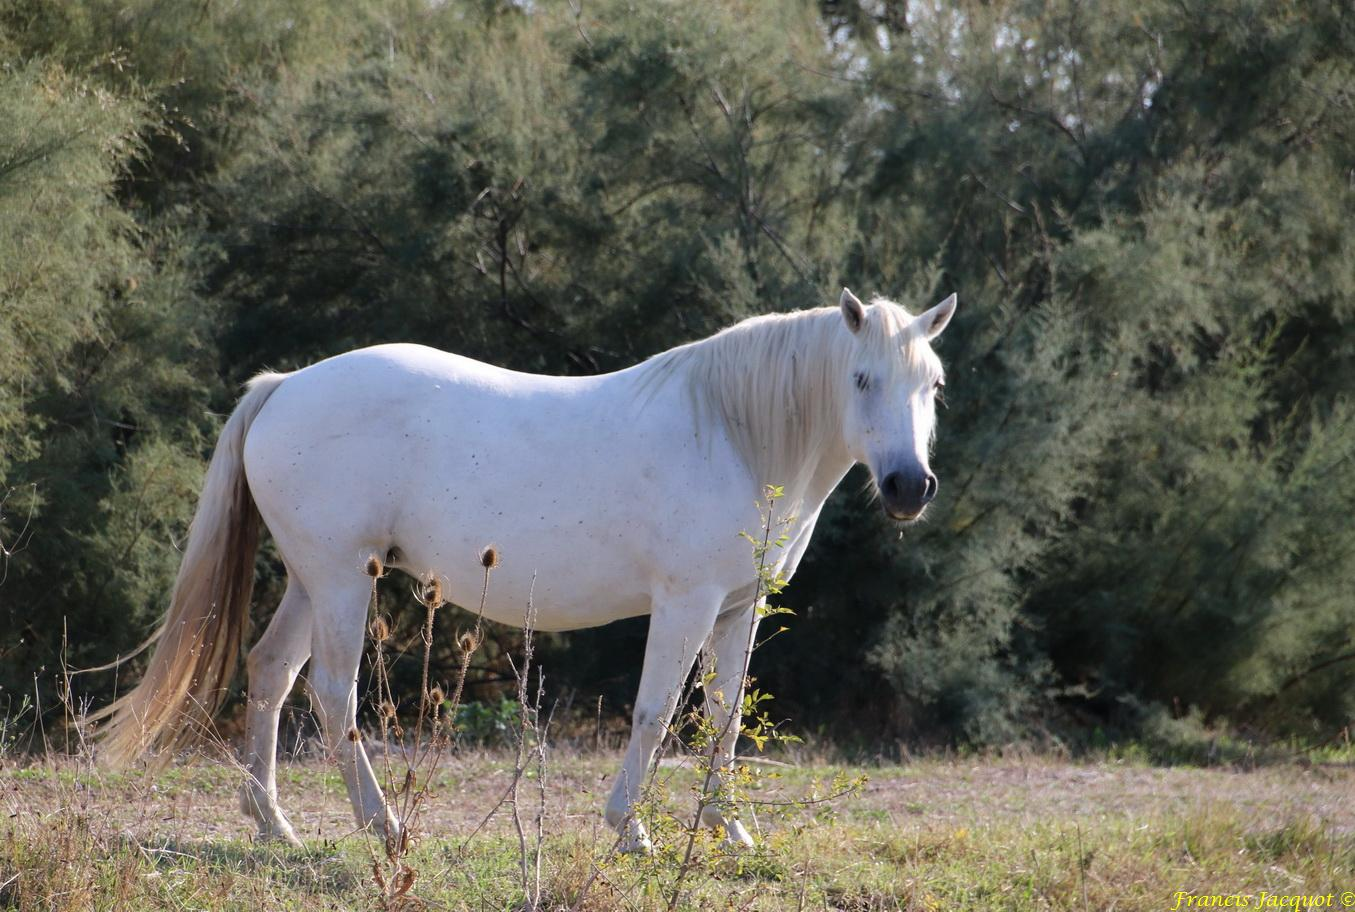 [Fil - Ouvert ] Chevaux - Page 8 111692881